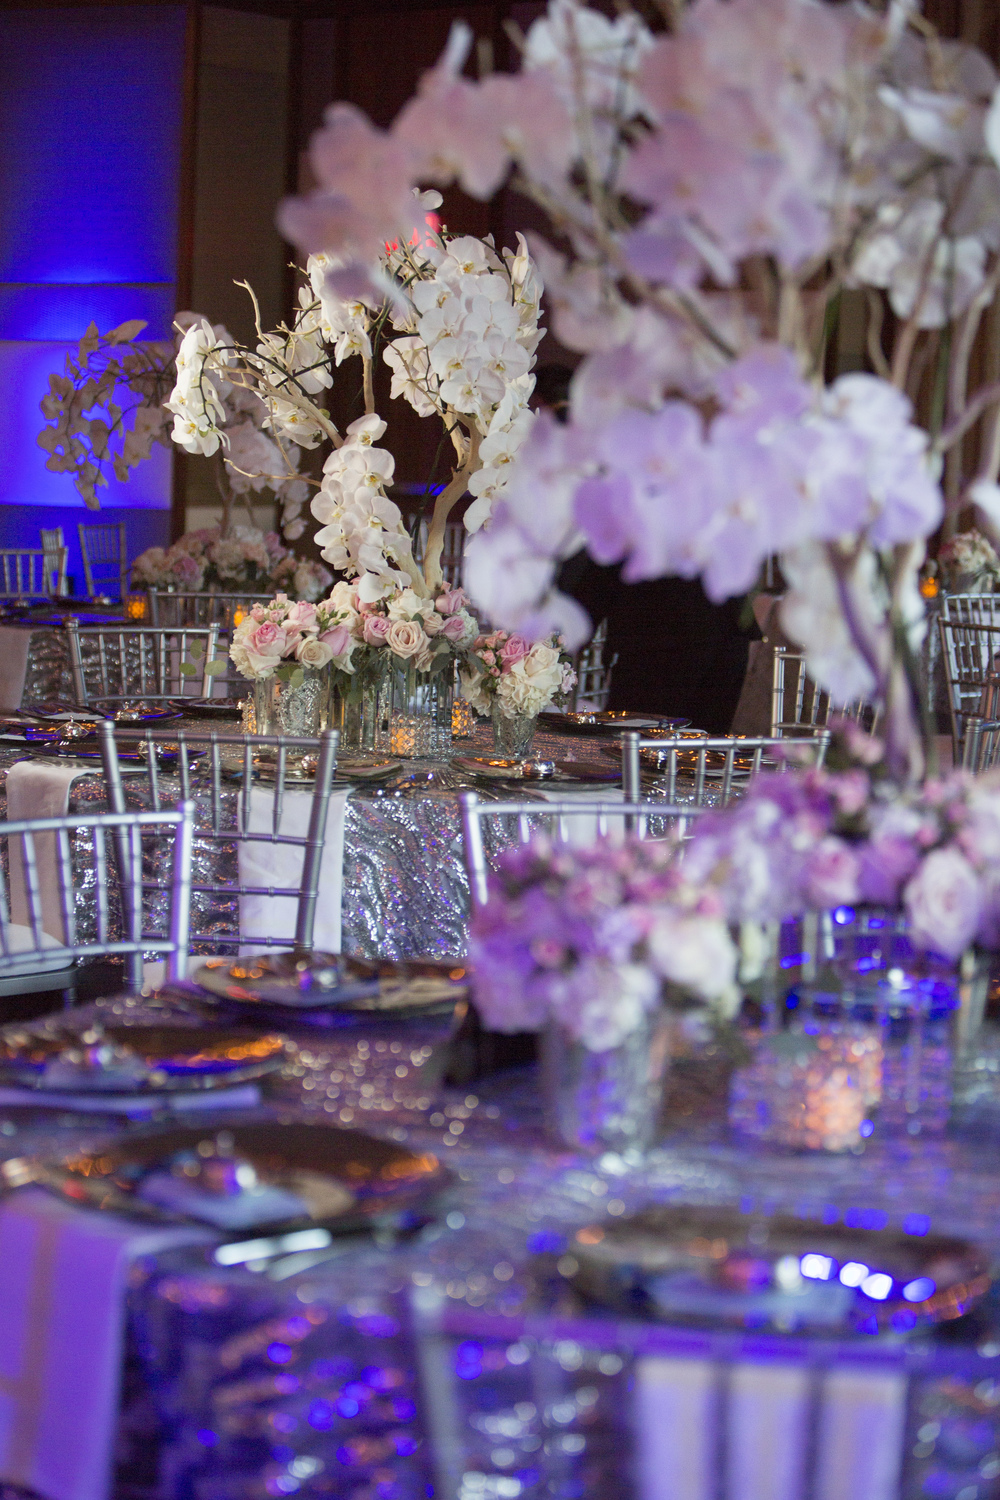 Luxury wedding reception featuring orchid trees, roses, silver table cloths, and chiavari chairs.  Blue lighting.  Las Vegas Wedding Planner Andrea Eppolito.  Photo by Altf.  Florals, Decor, and Entertainment by DBD Vegas.